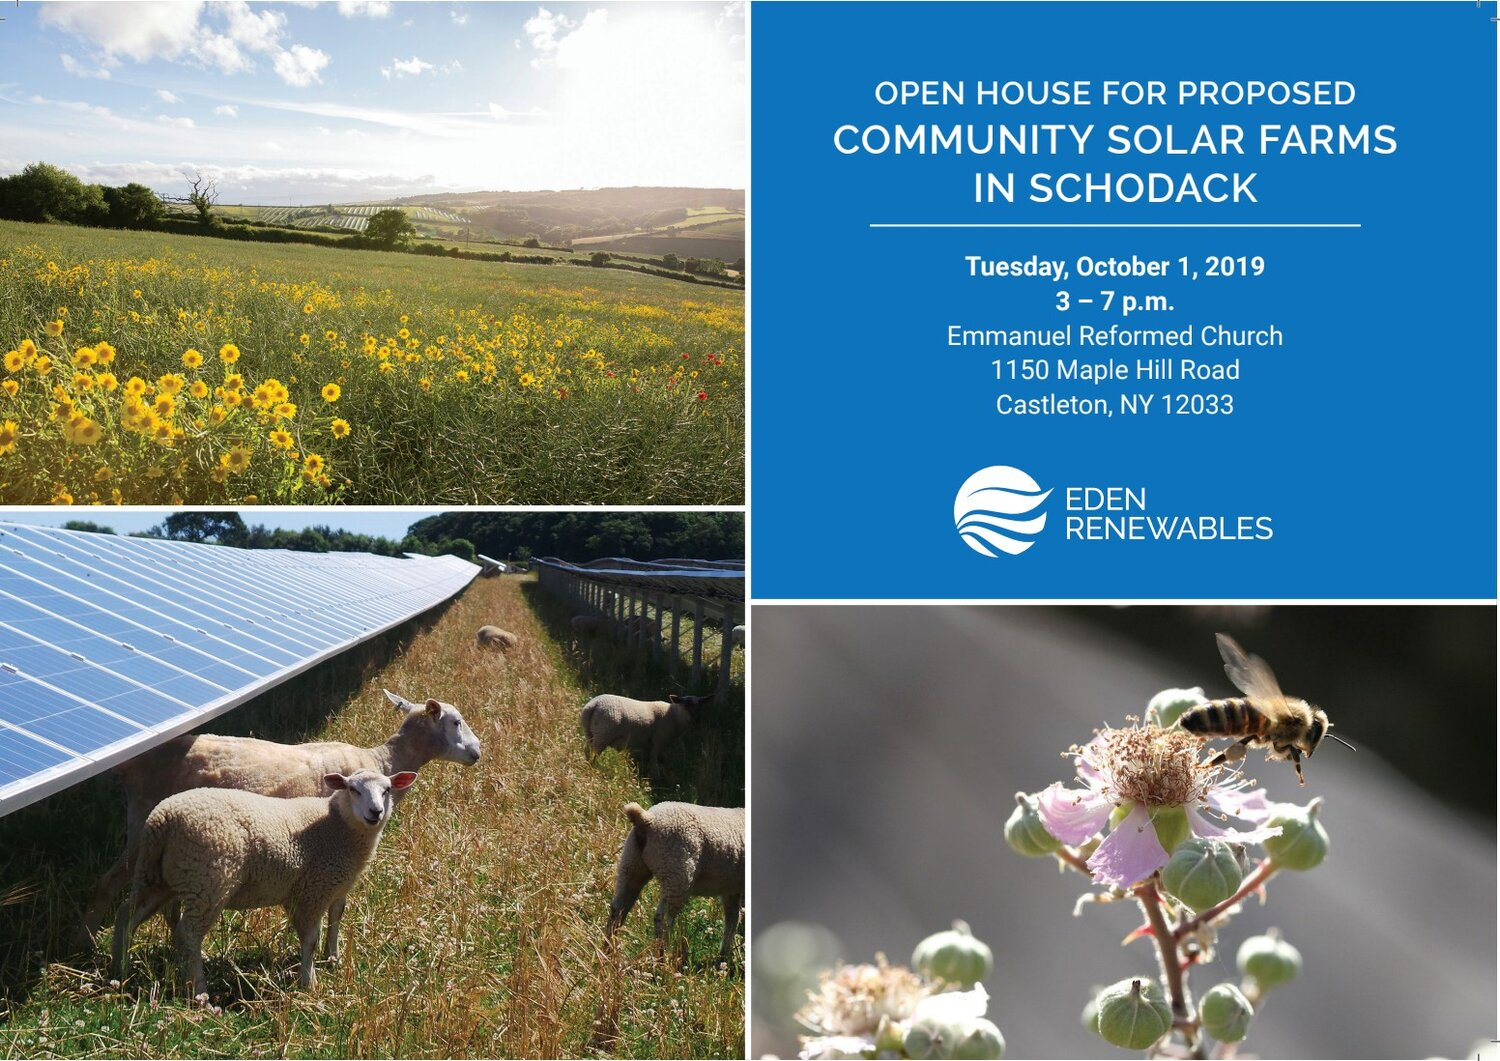 Eden Renewables Schodack Open House Oct 1 2019.jpg